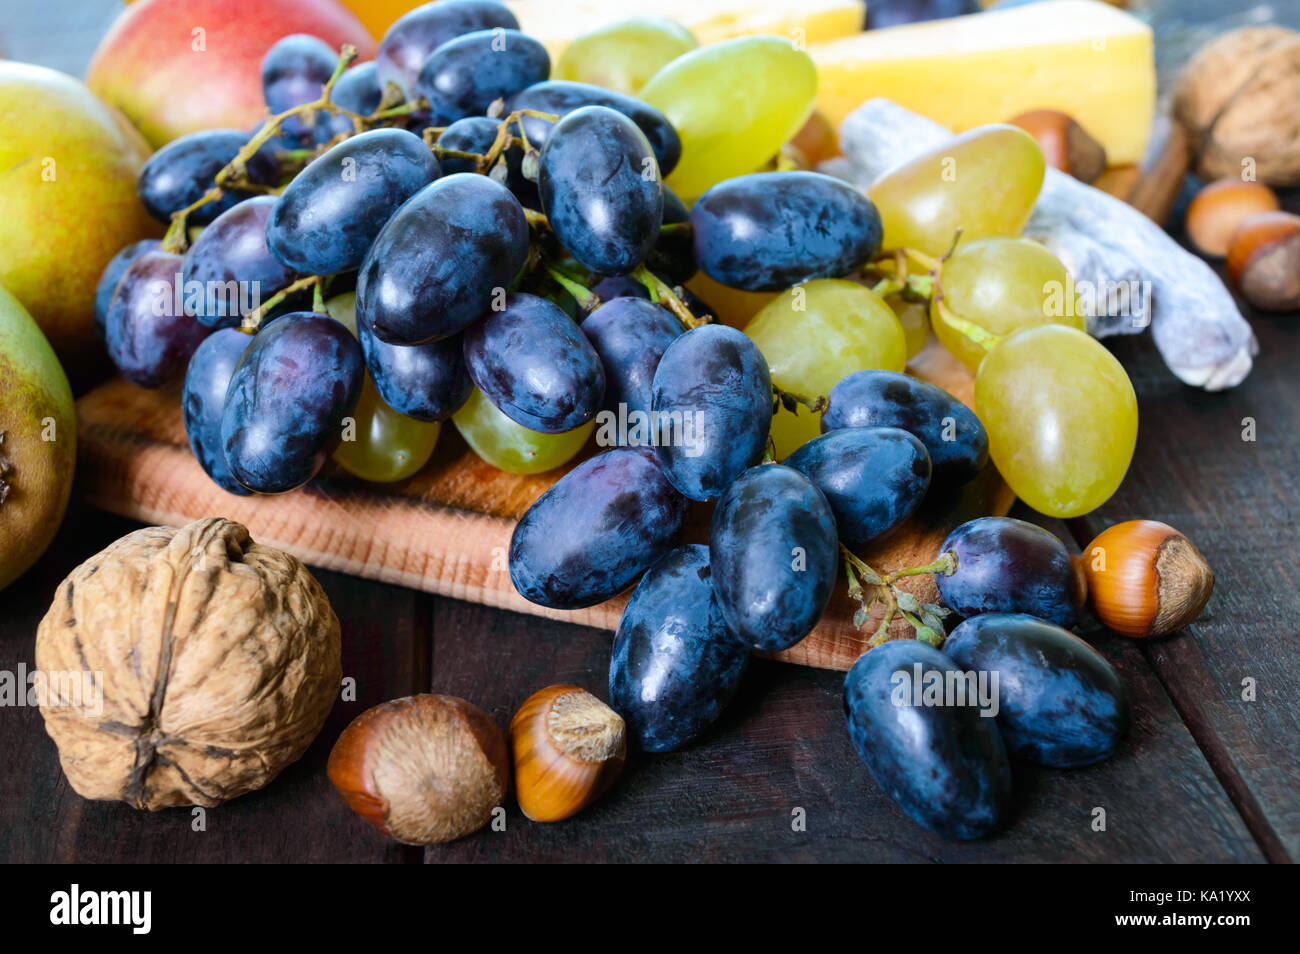 Autumn set of products: grapes, walnuts, hazelnuts, plums, honey, cheese, raisins, pears, dried cranberries on a - Stock Image